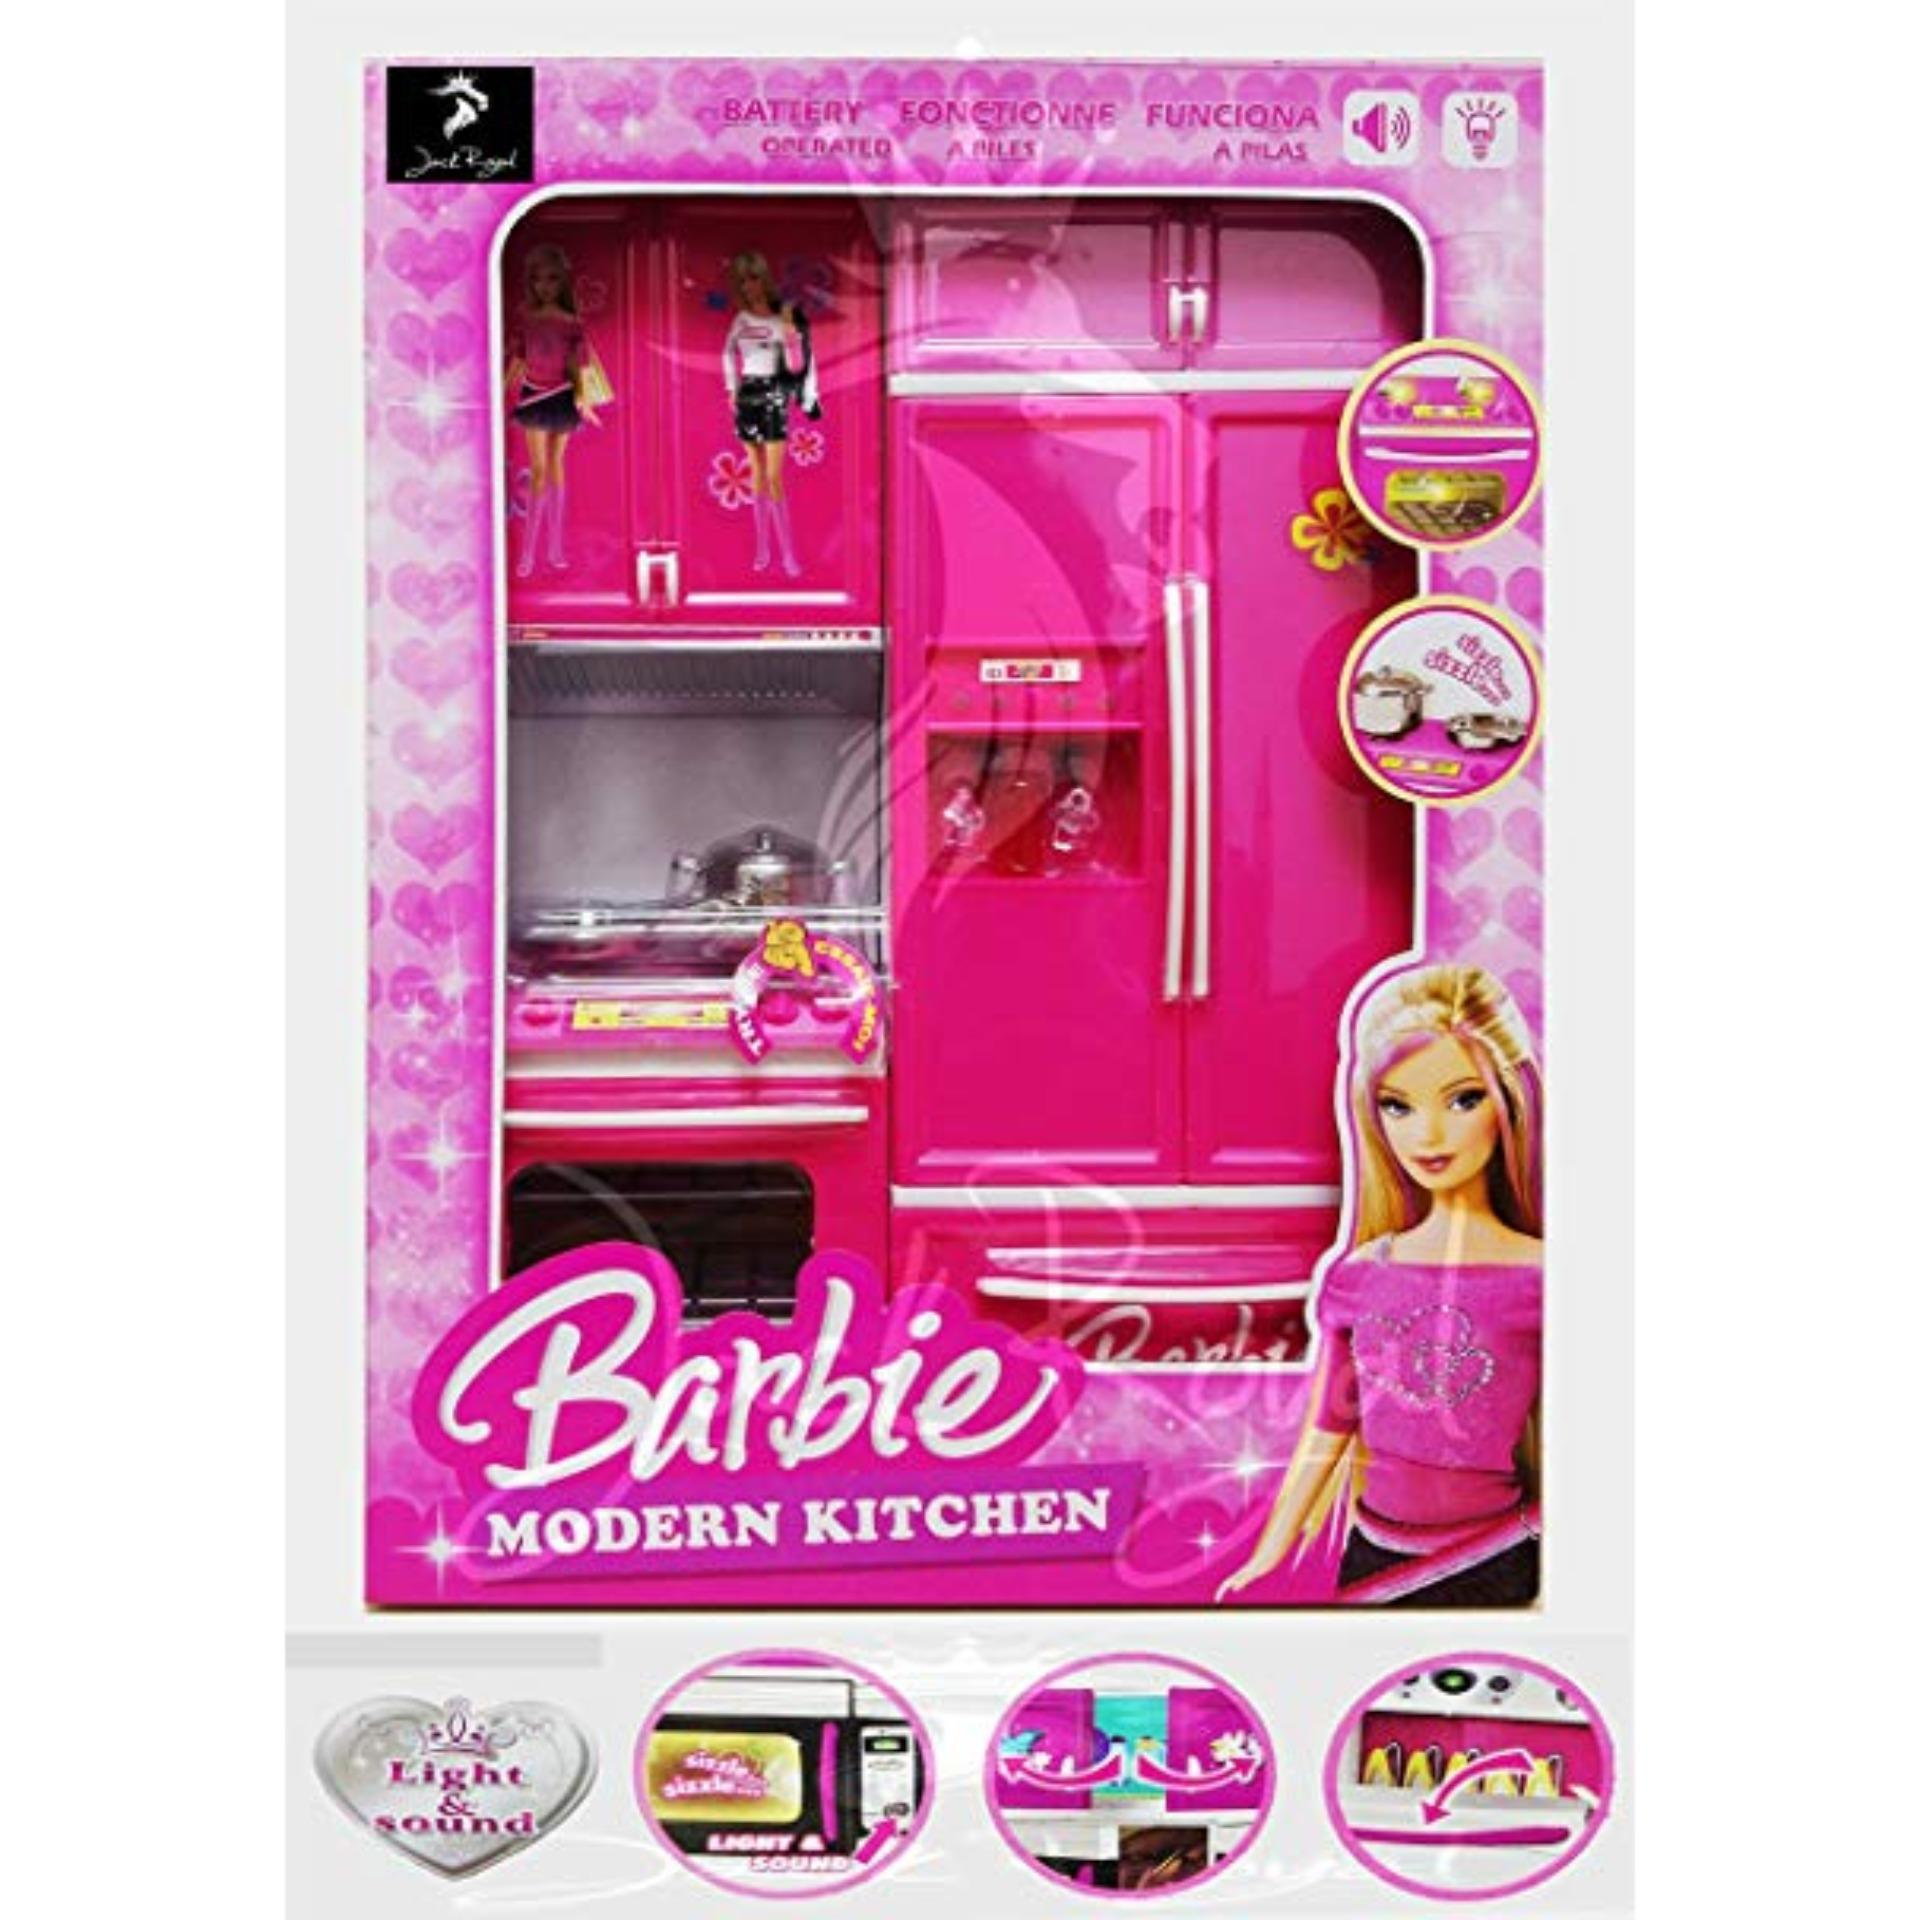 Barbie Kitchen Set Barbie Furniture Dress Up Doll Accessories Toy For Girl Toy Buy Online At Best Prices In Bangladesh Daraz Com Bd